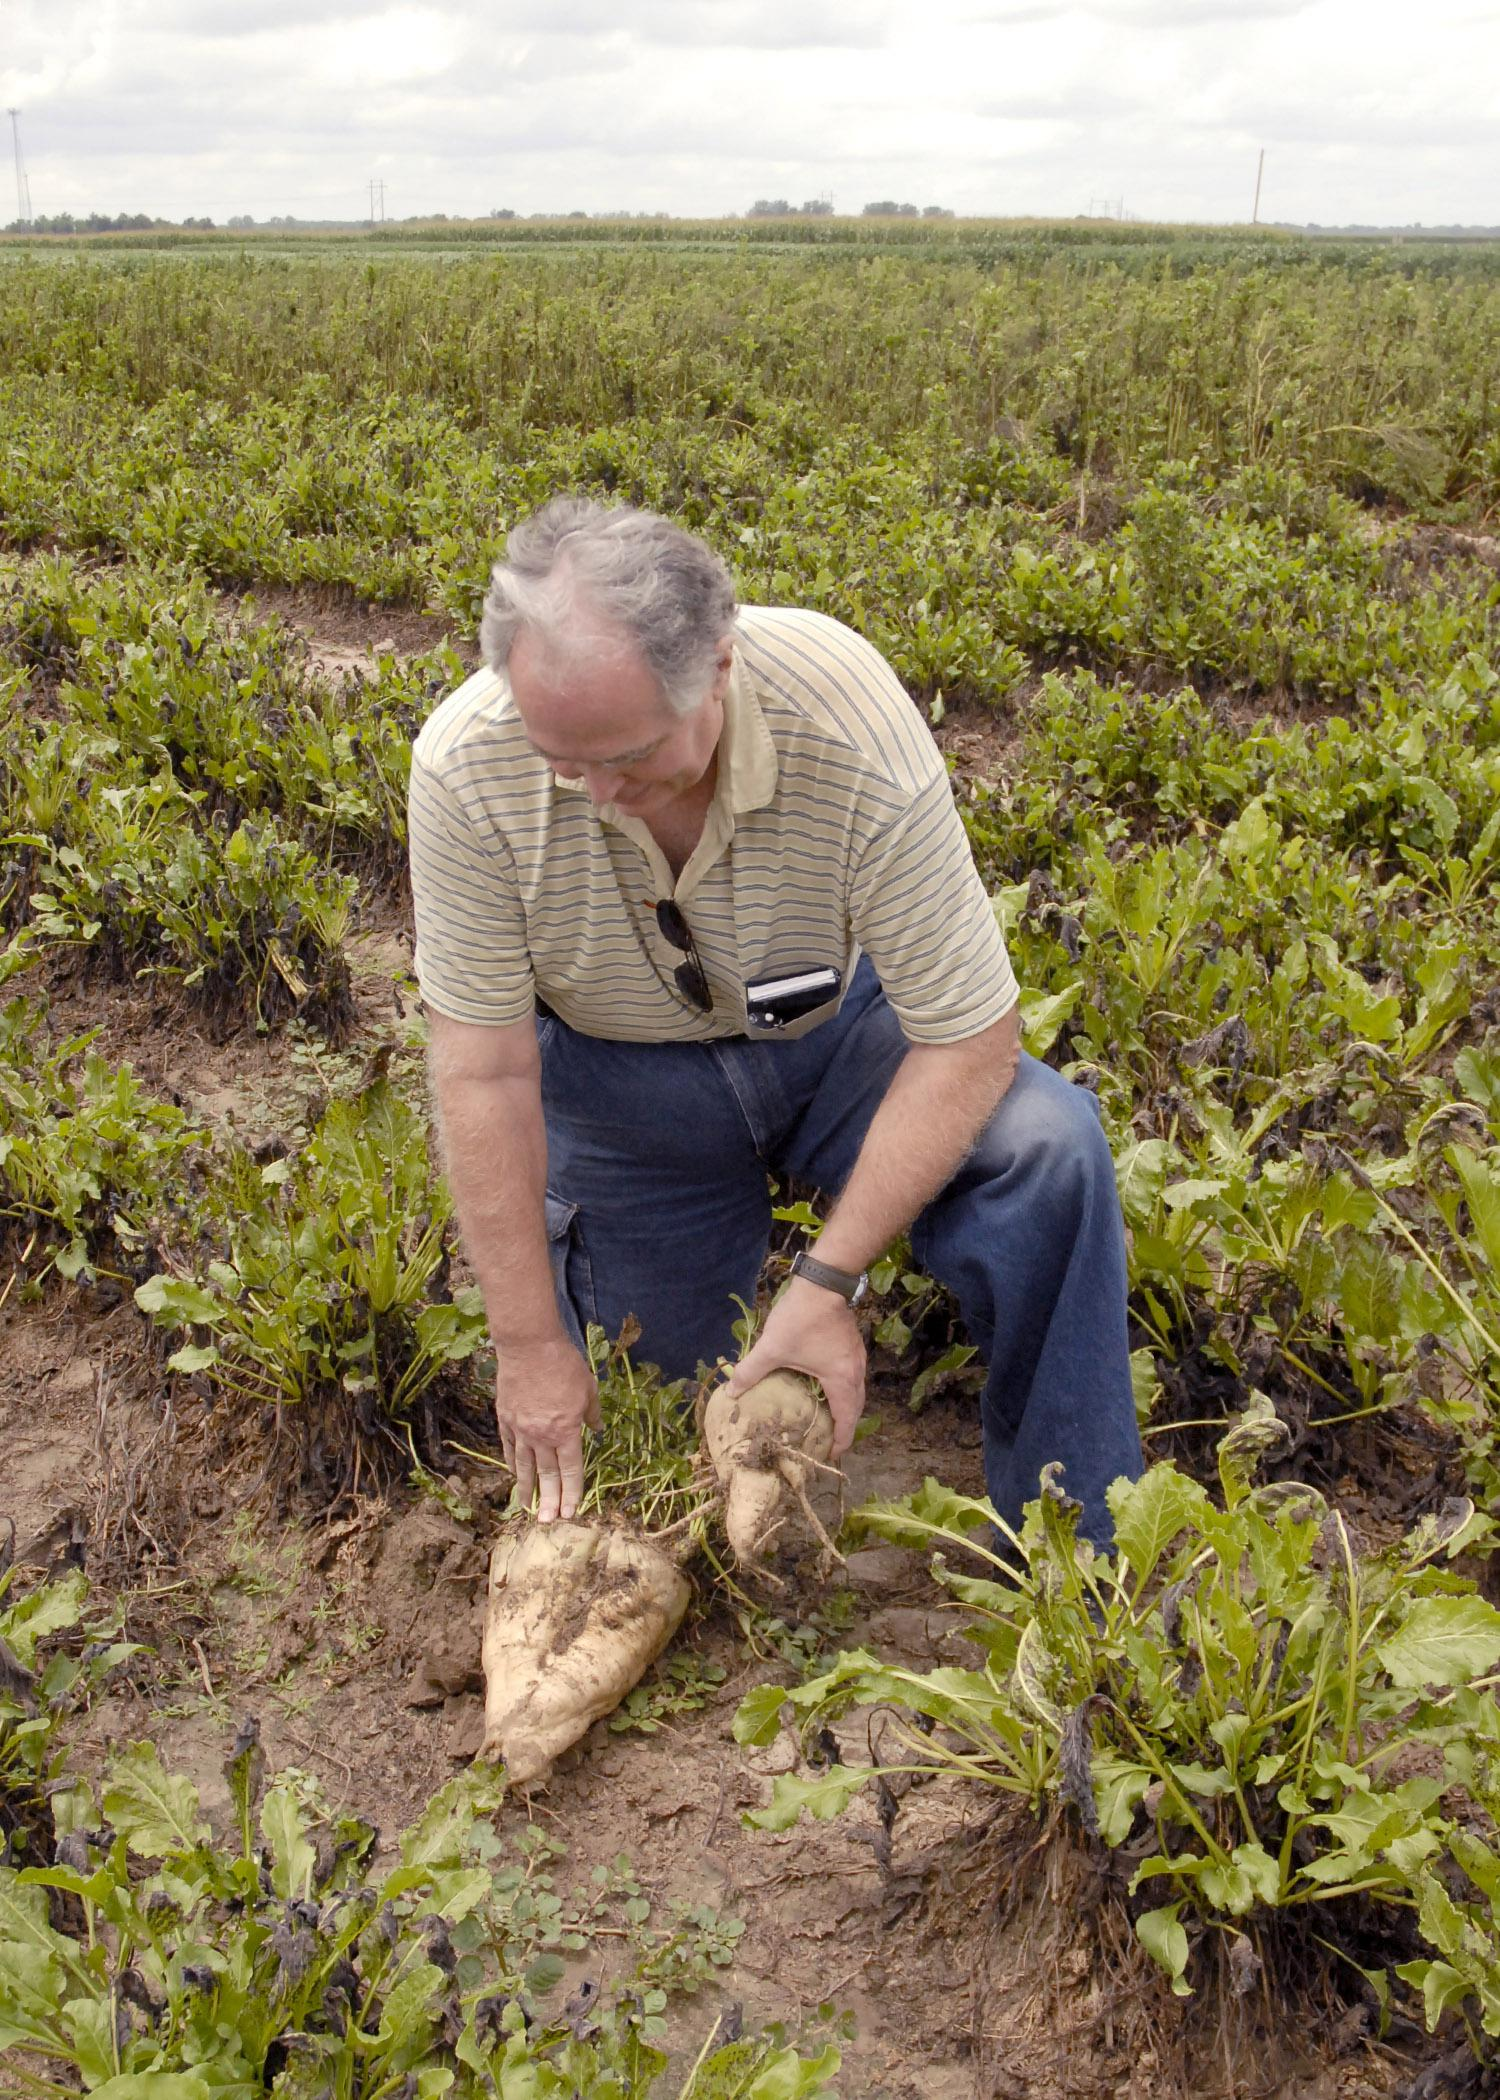 Wayne Ebelhar, a researcher with the Mississippi Agricultural and Forestry Experiment Station, compares on July 16, 2013, an energy beet planted at the Mississippi State University Delta Research and Extension Center last September with one planted in March to see the size differences. Researchers are establishing the growth and profit potential for this bioenergy source most commonly grown across the Northern Plains. (Photo by MSU Ag Communications/Linda Breazeale)